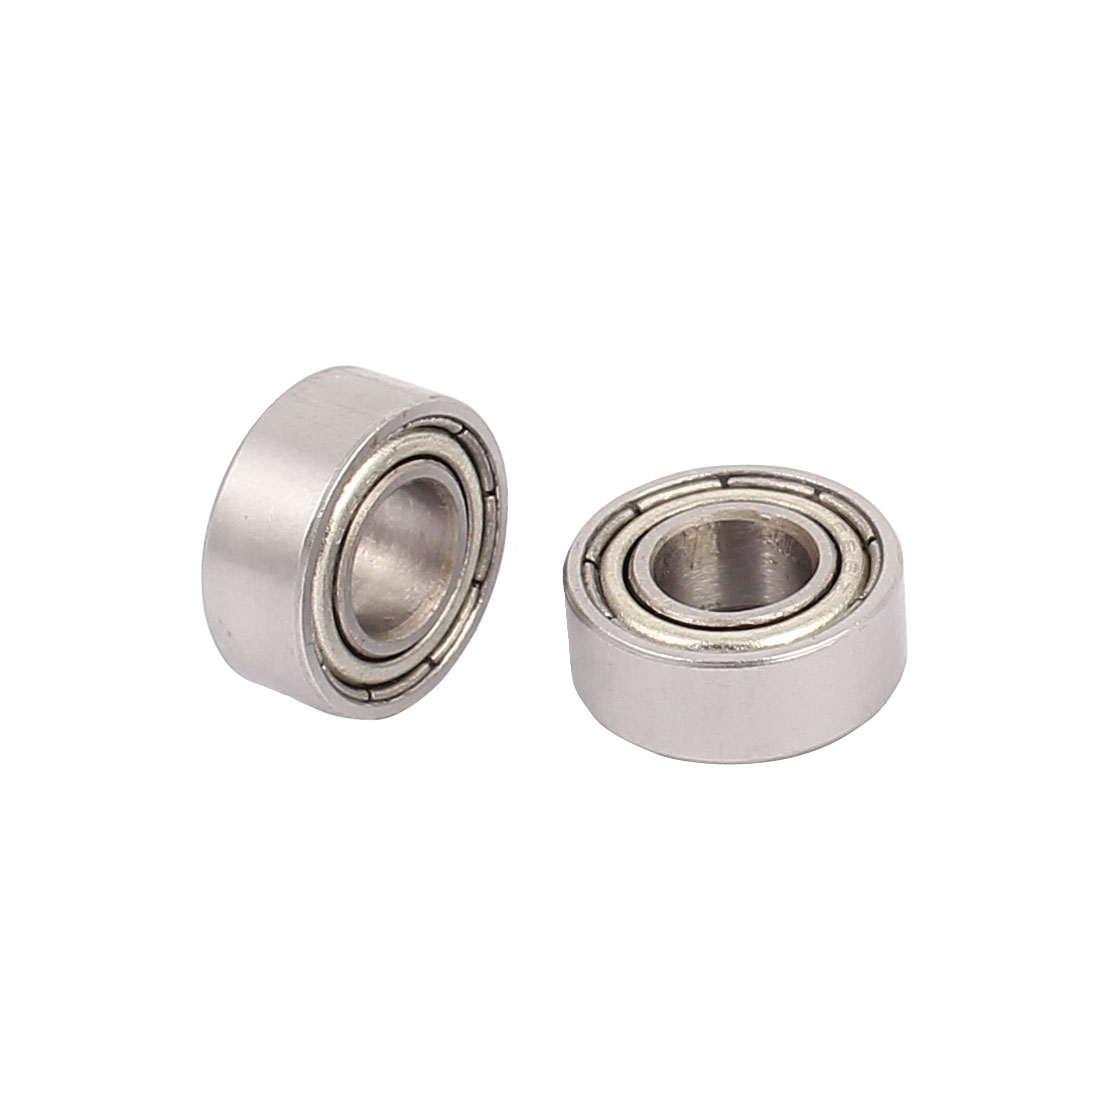 S686Z Double Shielded Deep Groove Ball Bearing Silver Tone 13mmx6mmx5mm 2pcs